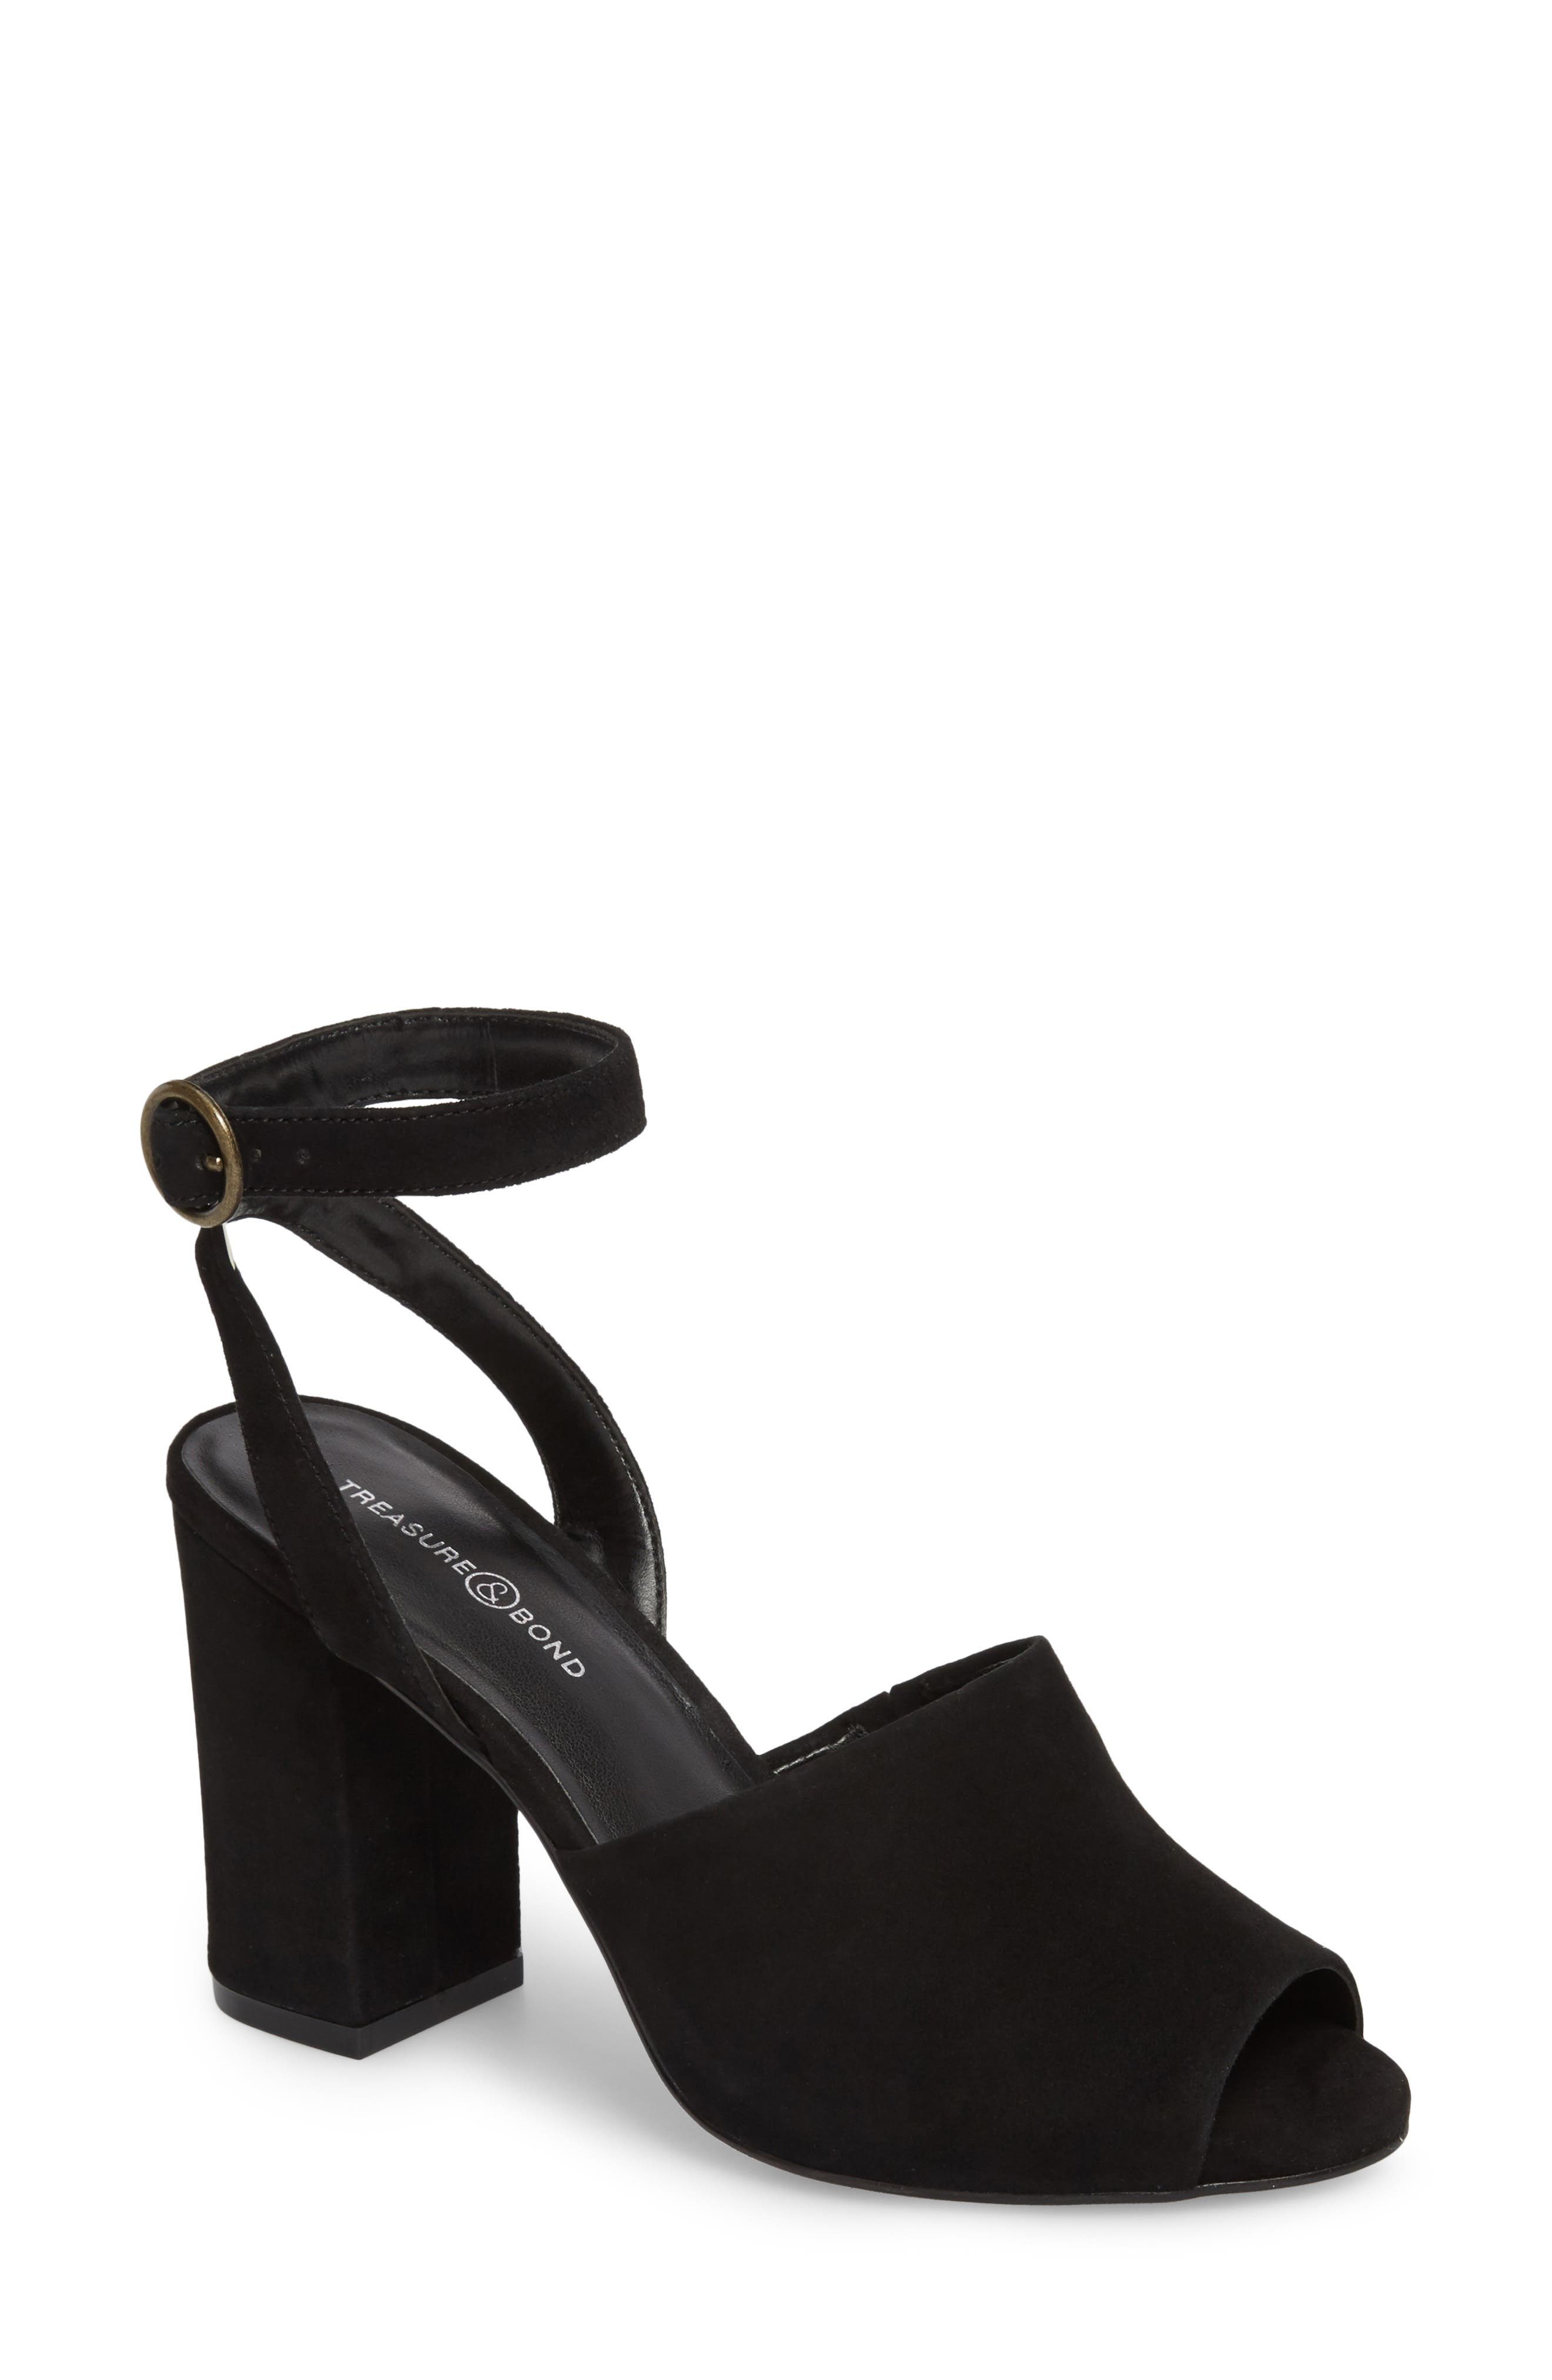 Pipper Block Heel Sandal,                         Main,                         color, BLACK SUEDE